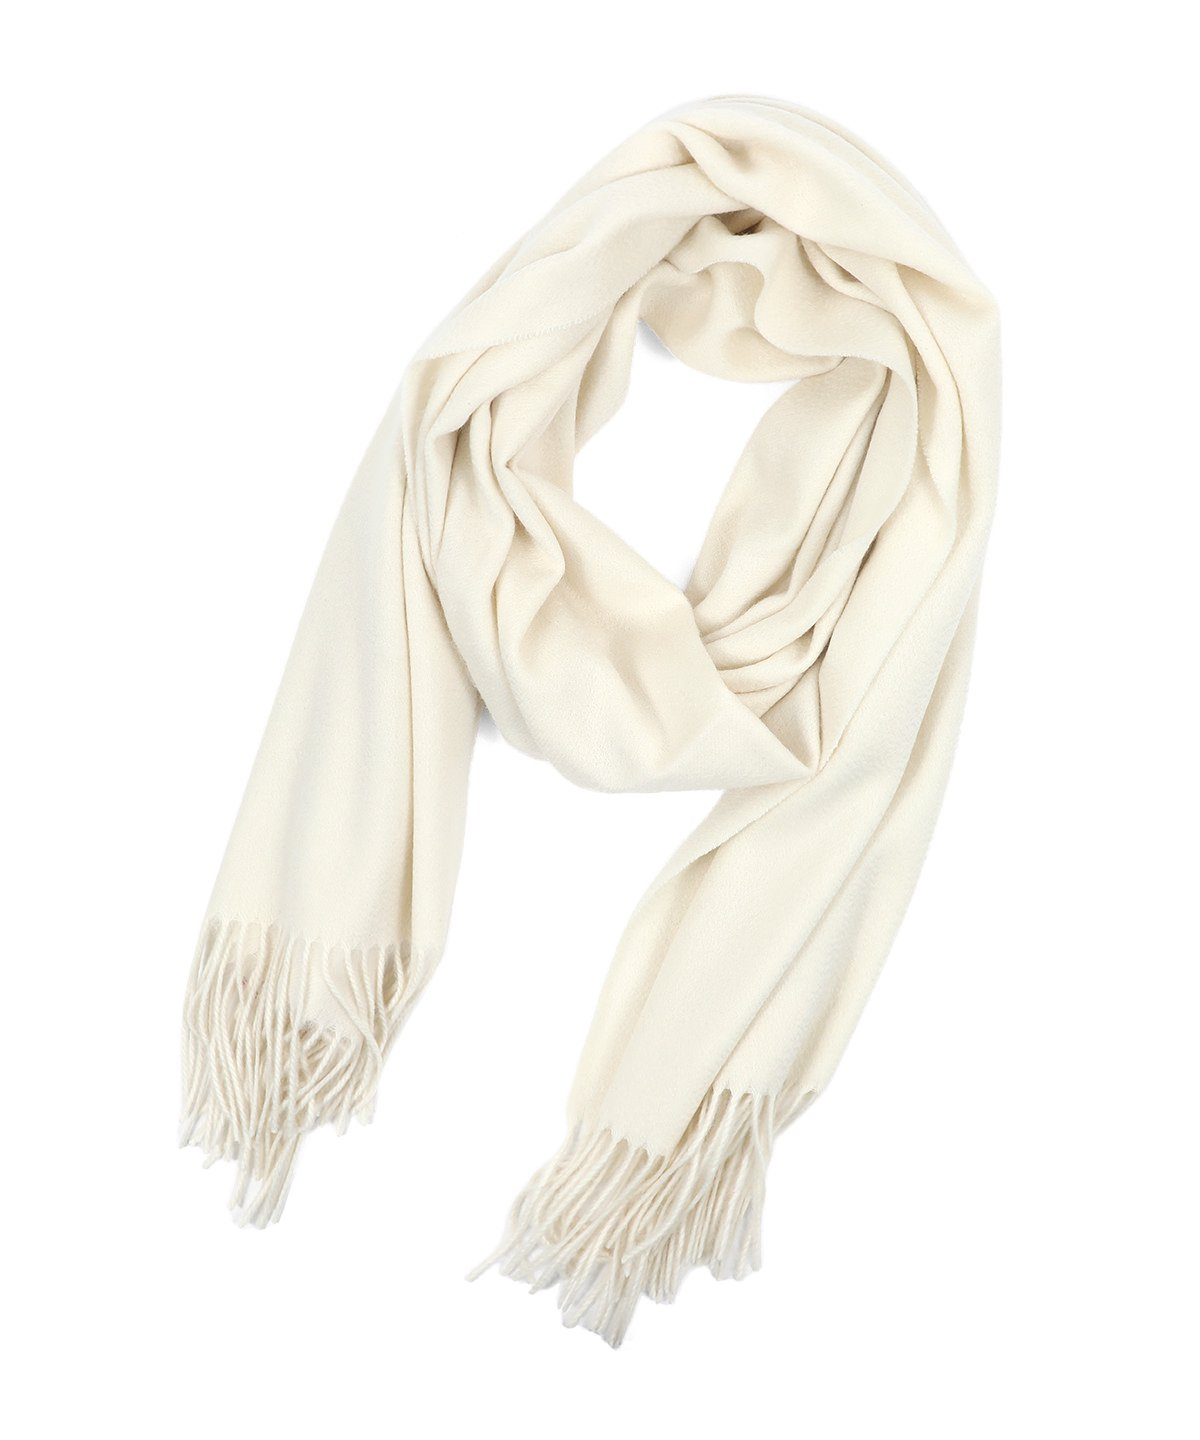 YOUNG'S BEST CASHMERE SCARF